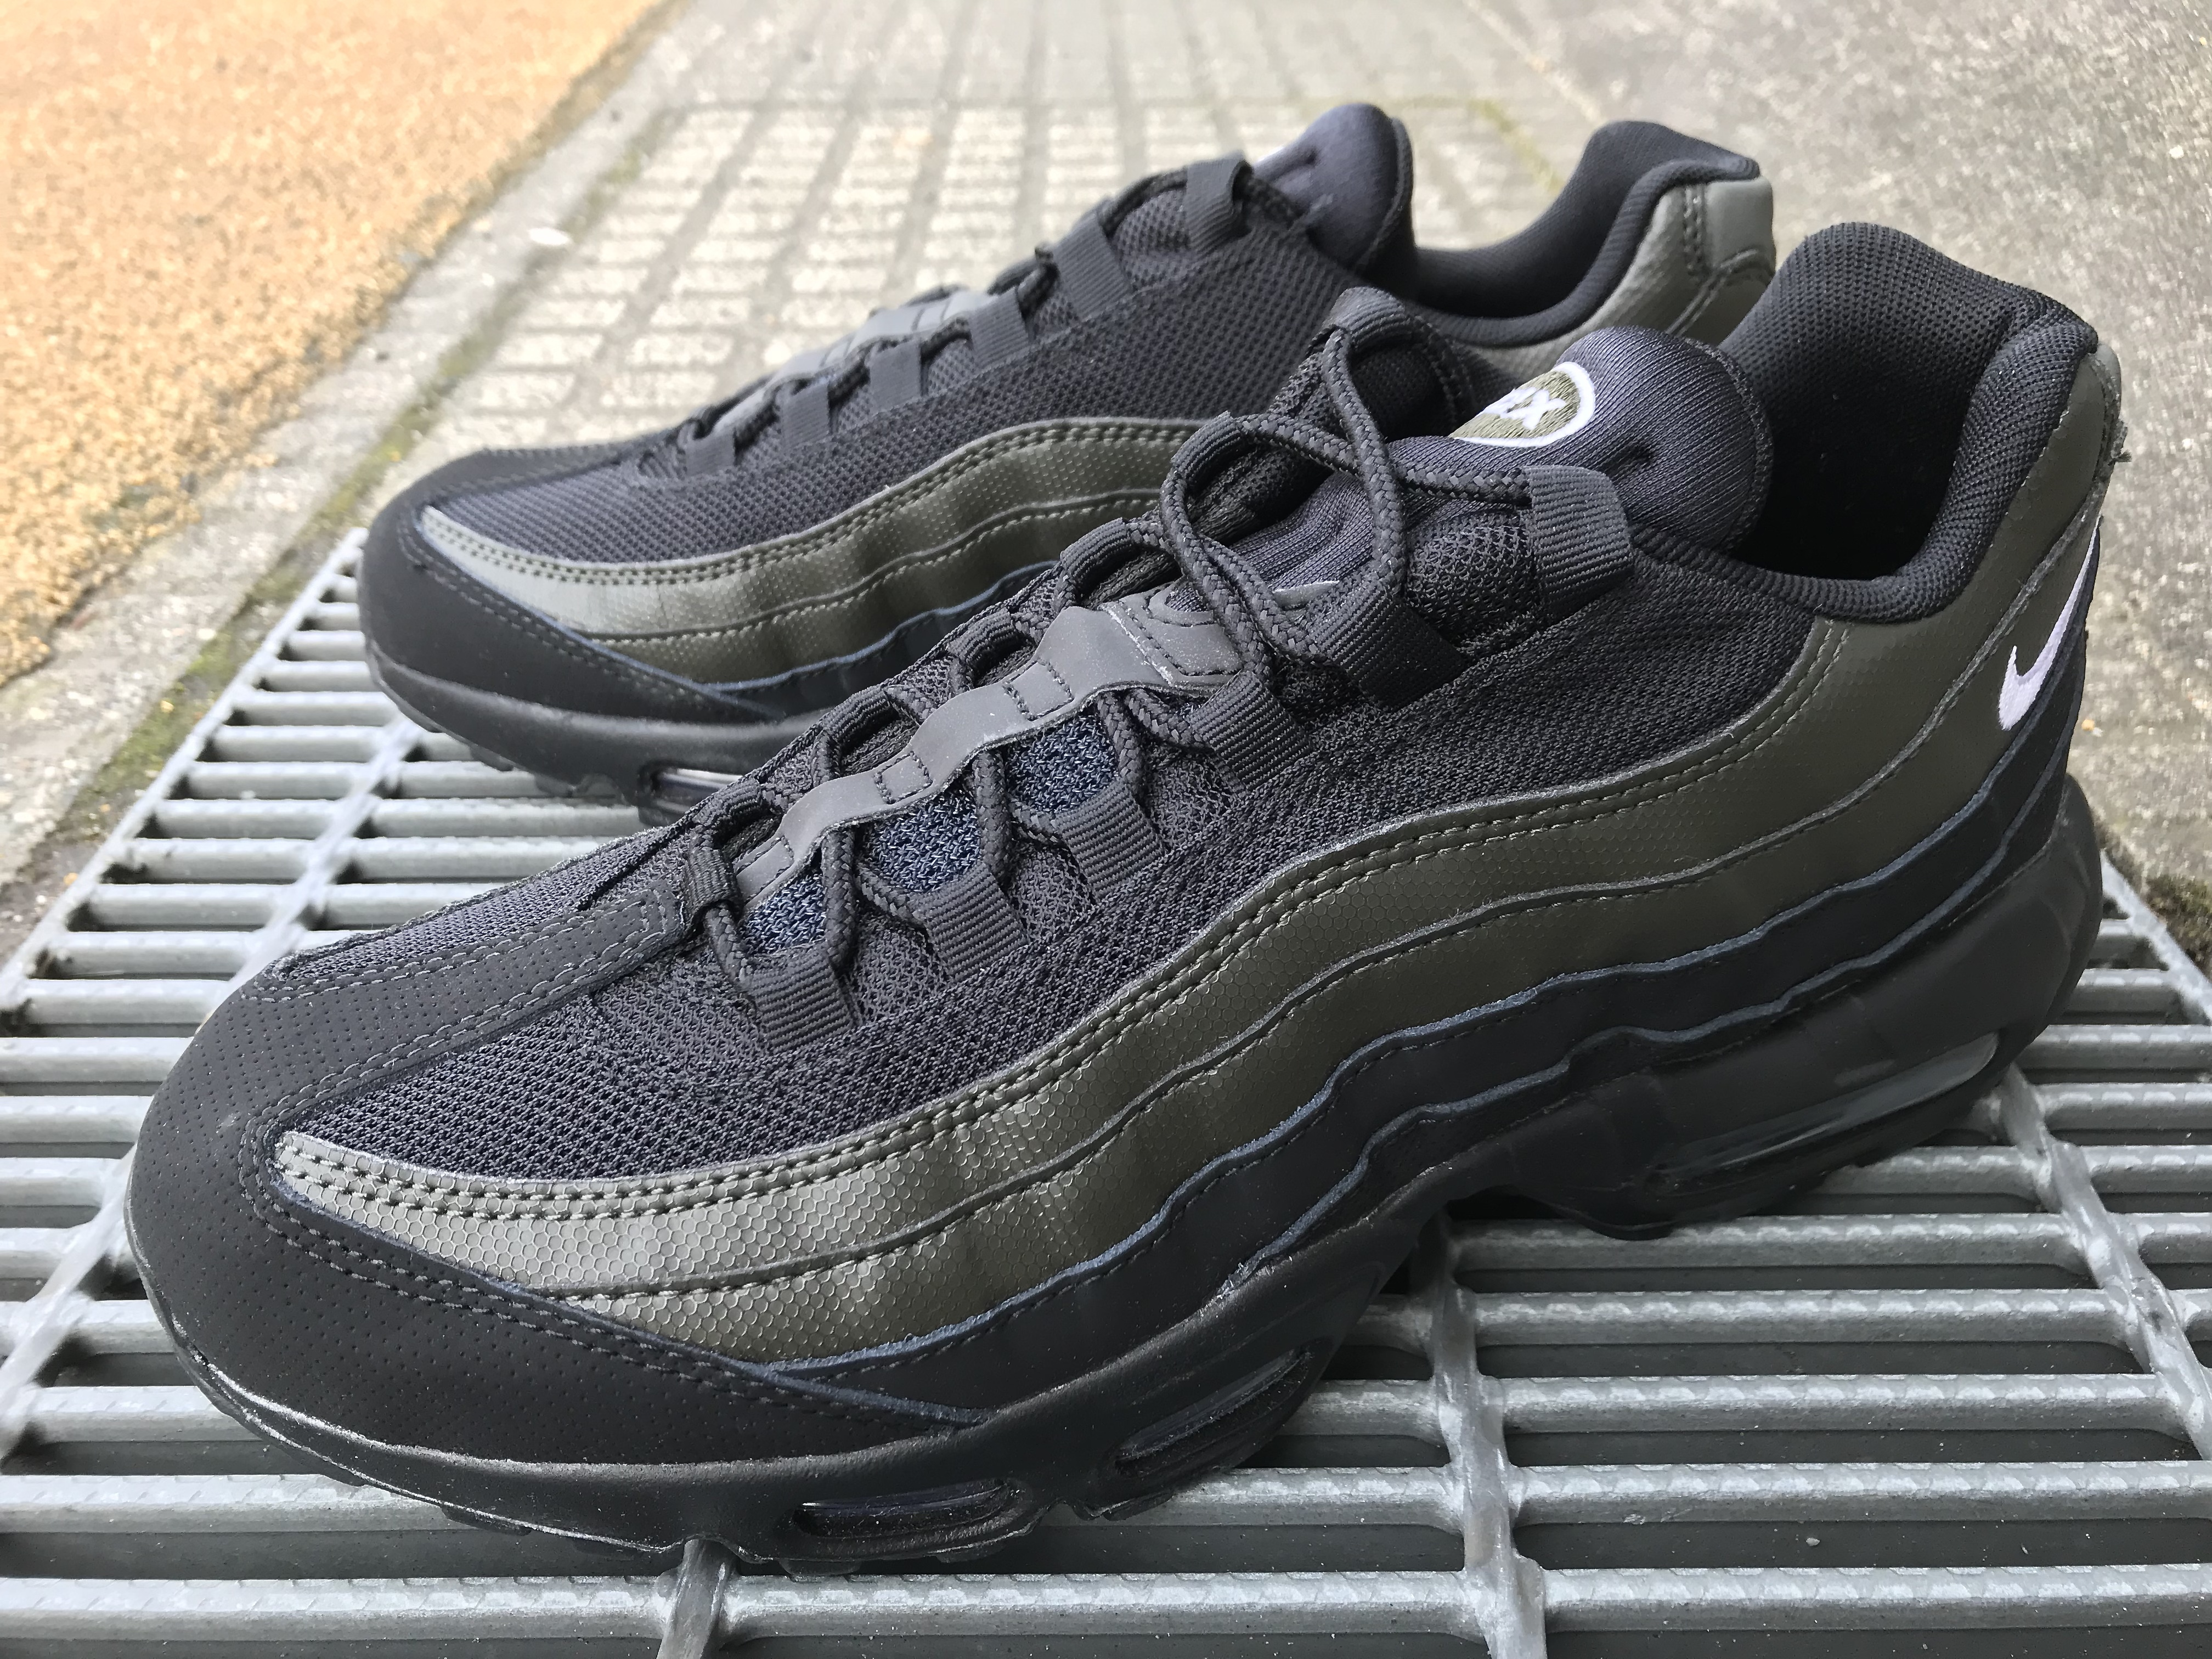 online store f0f49 57e03 NIKE AIR MAX 95 ESSENTIAL (BLACK/WHITE-SEQUOIA) |